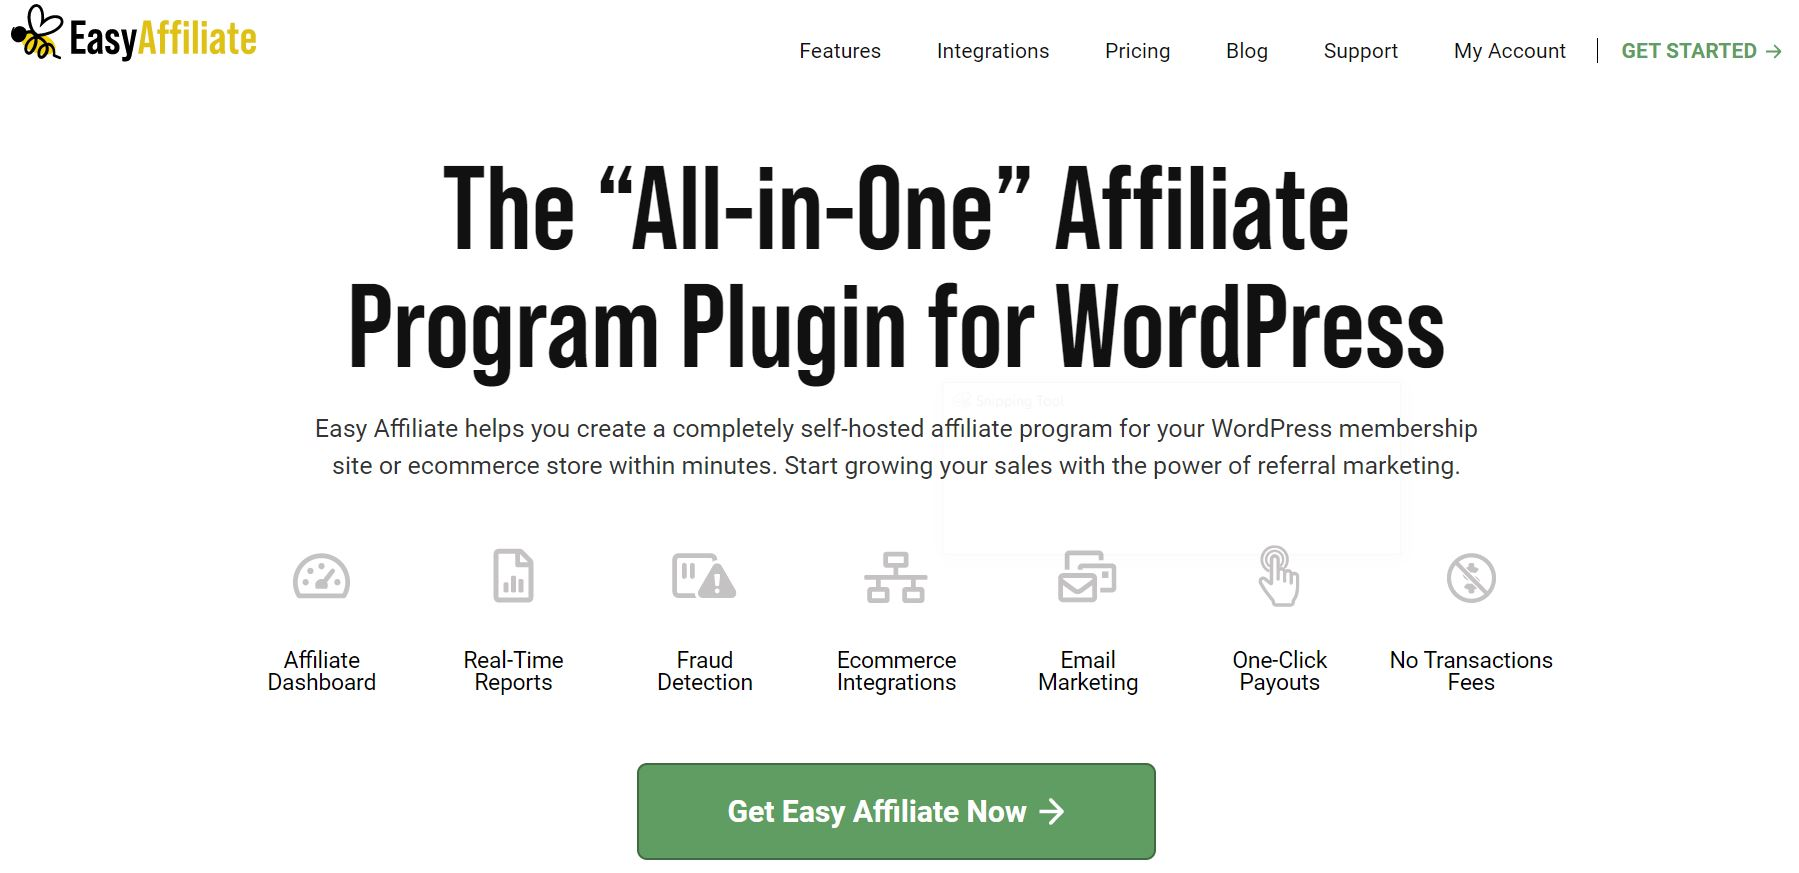 The Easy Affiliate homepage